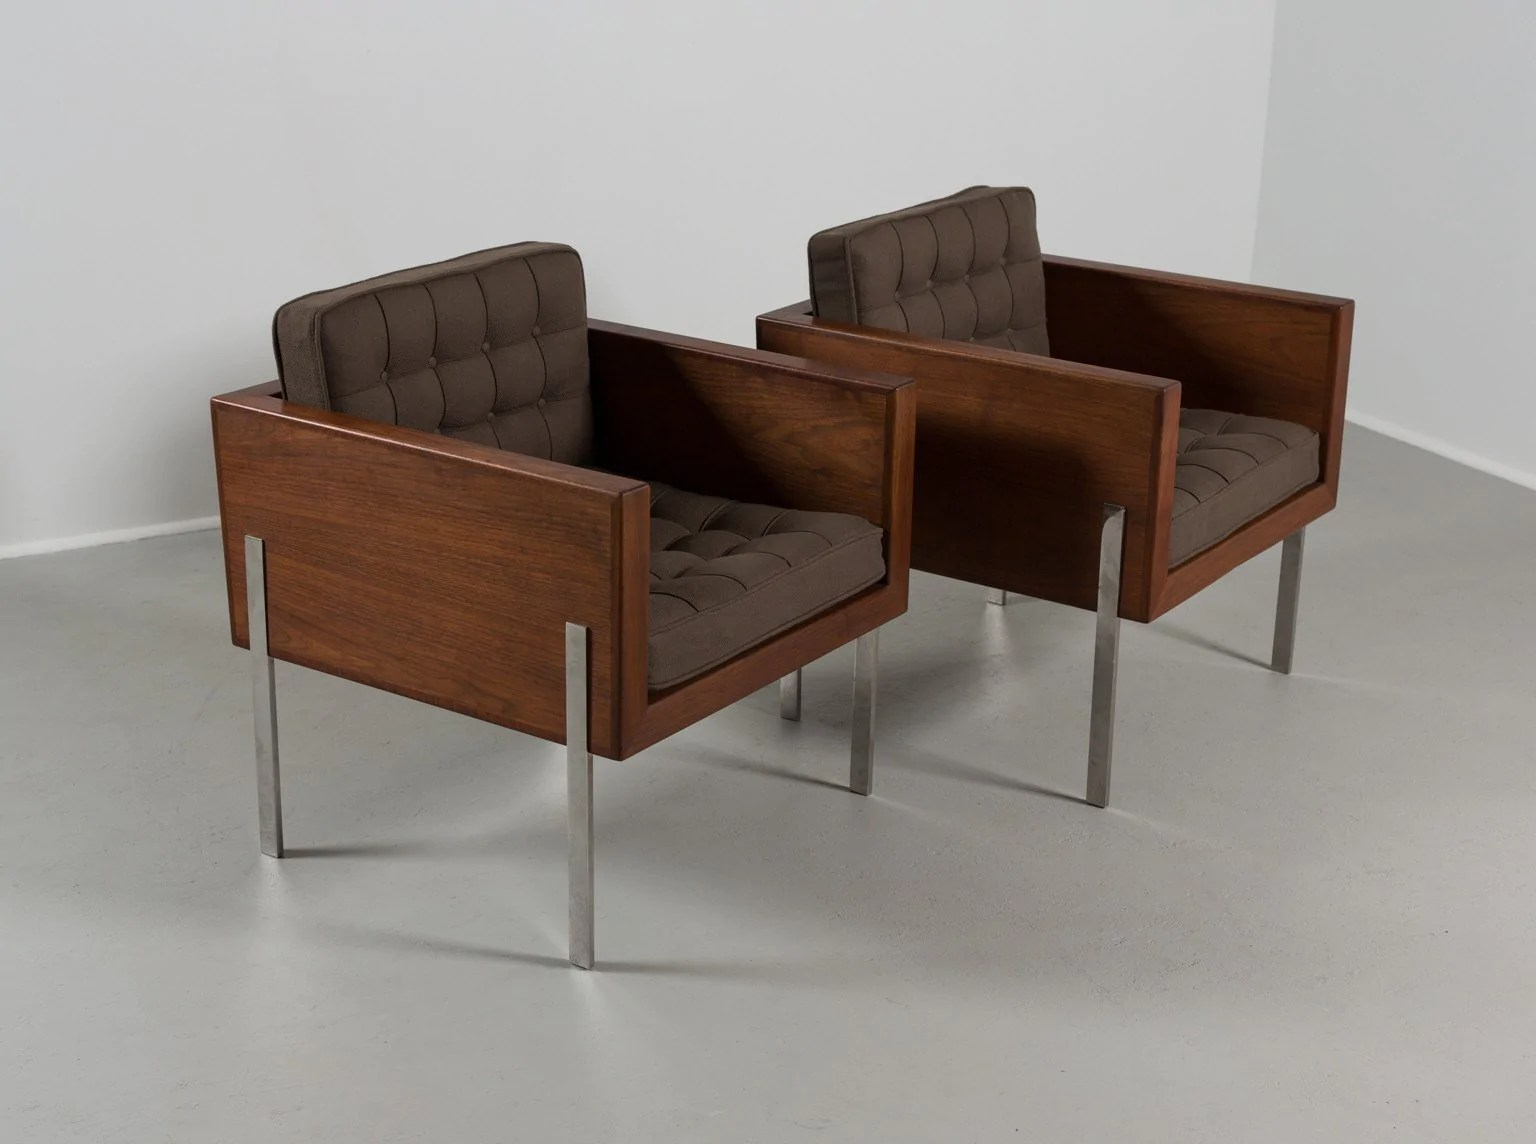 Cube Chairs Pair Of Harvey Probber Cube Chairs 1960s